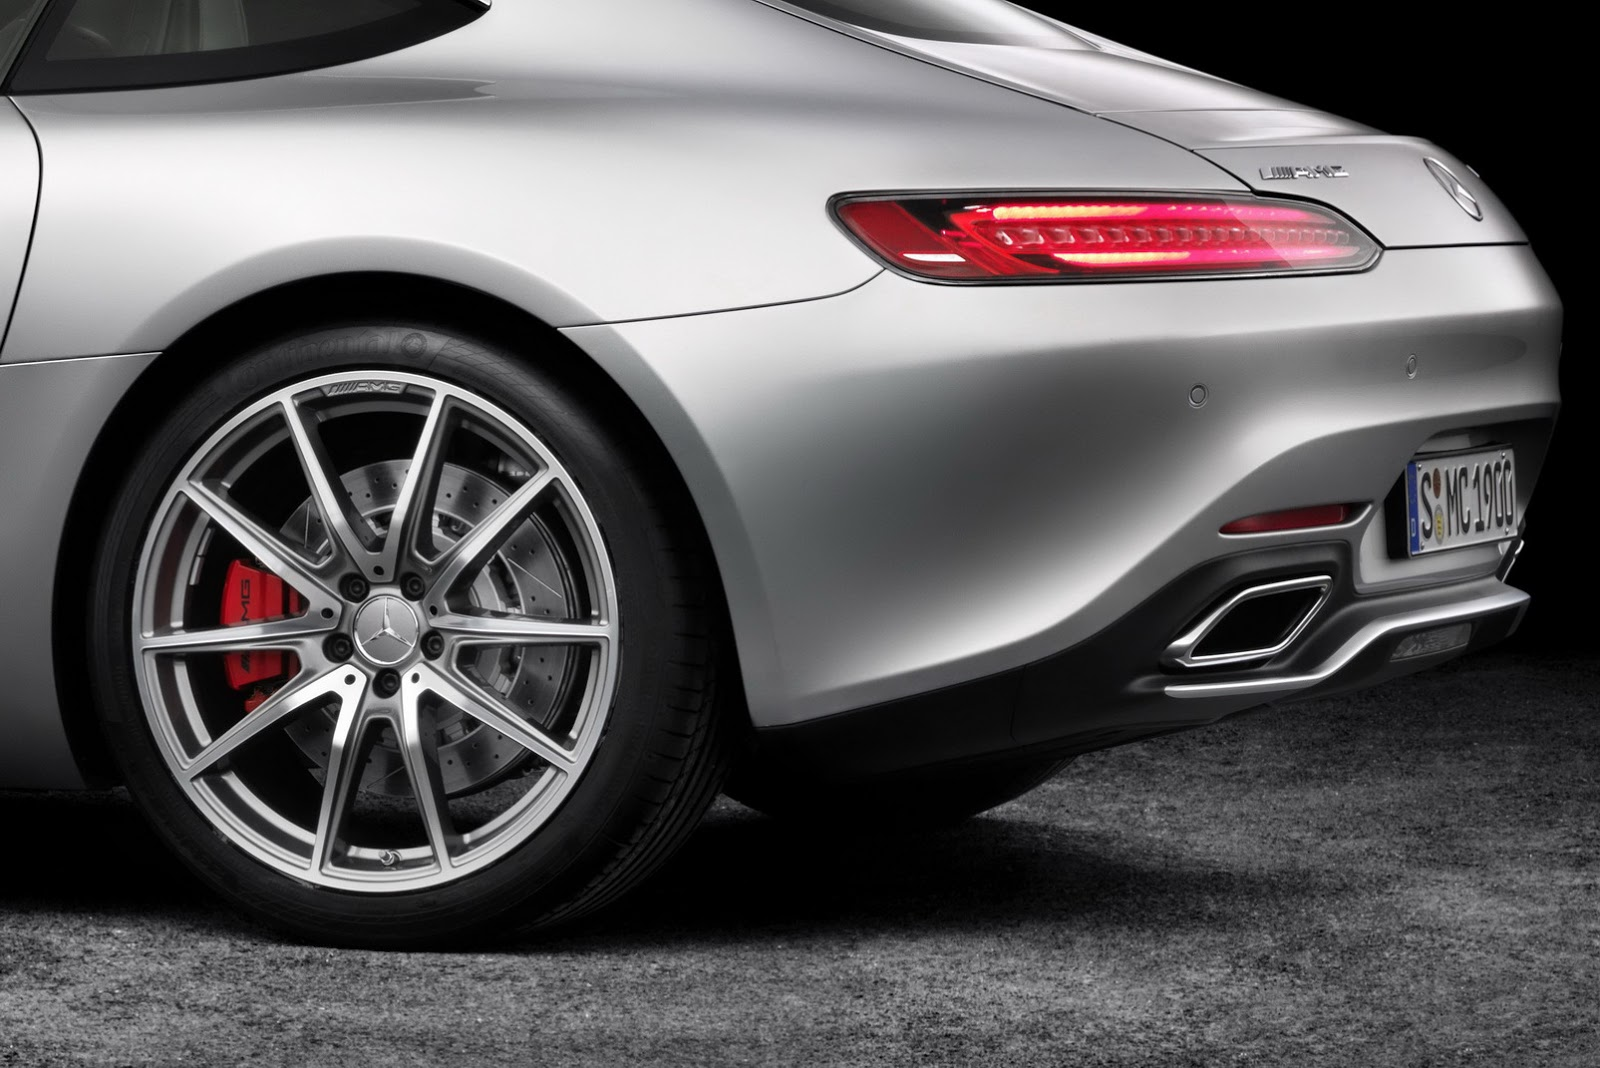 All new 2016 mercedes benz amg gt images details 35 for All new mercedes benz